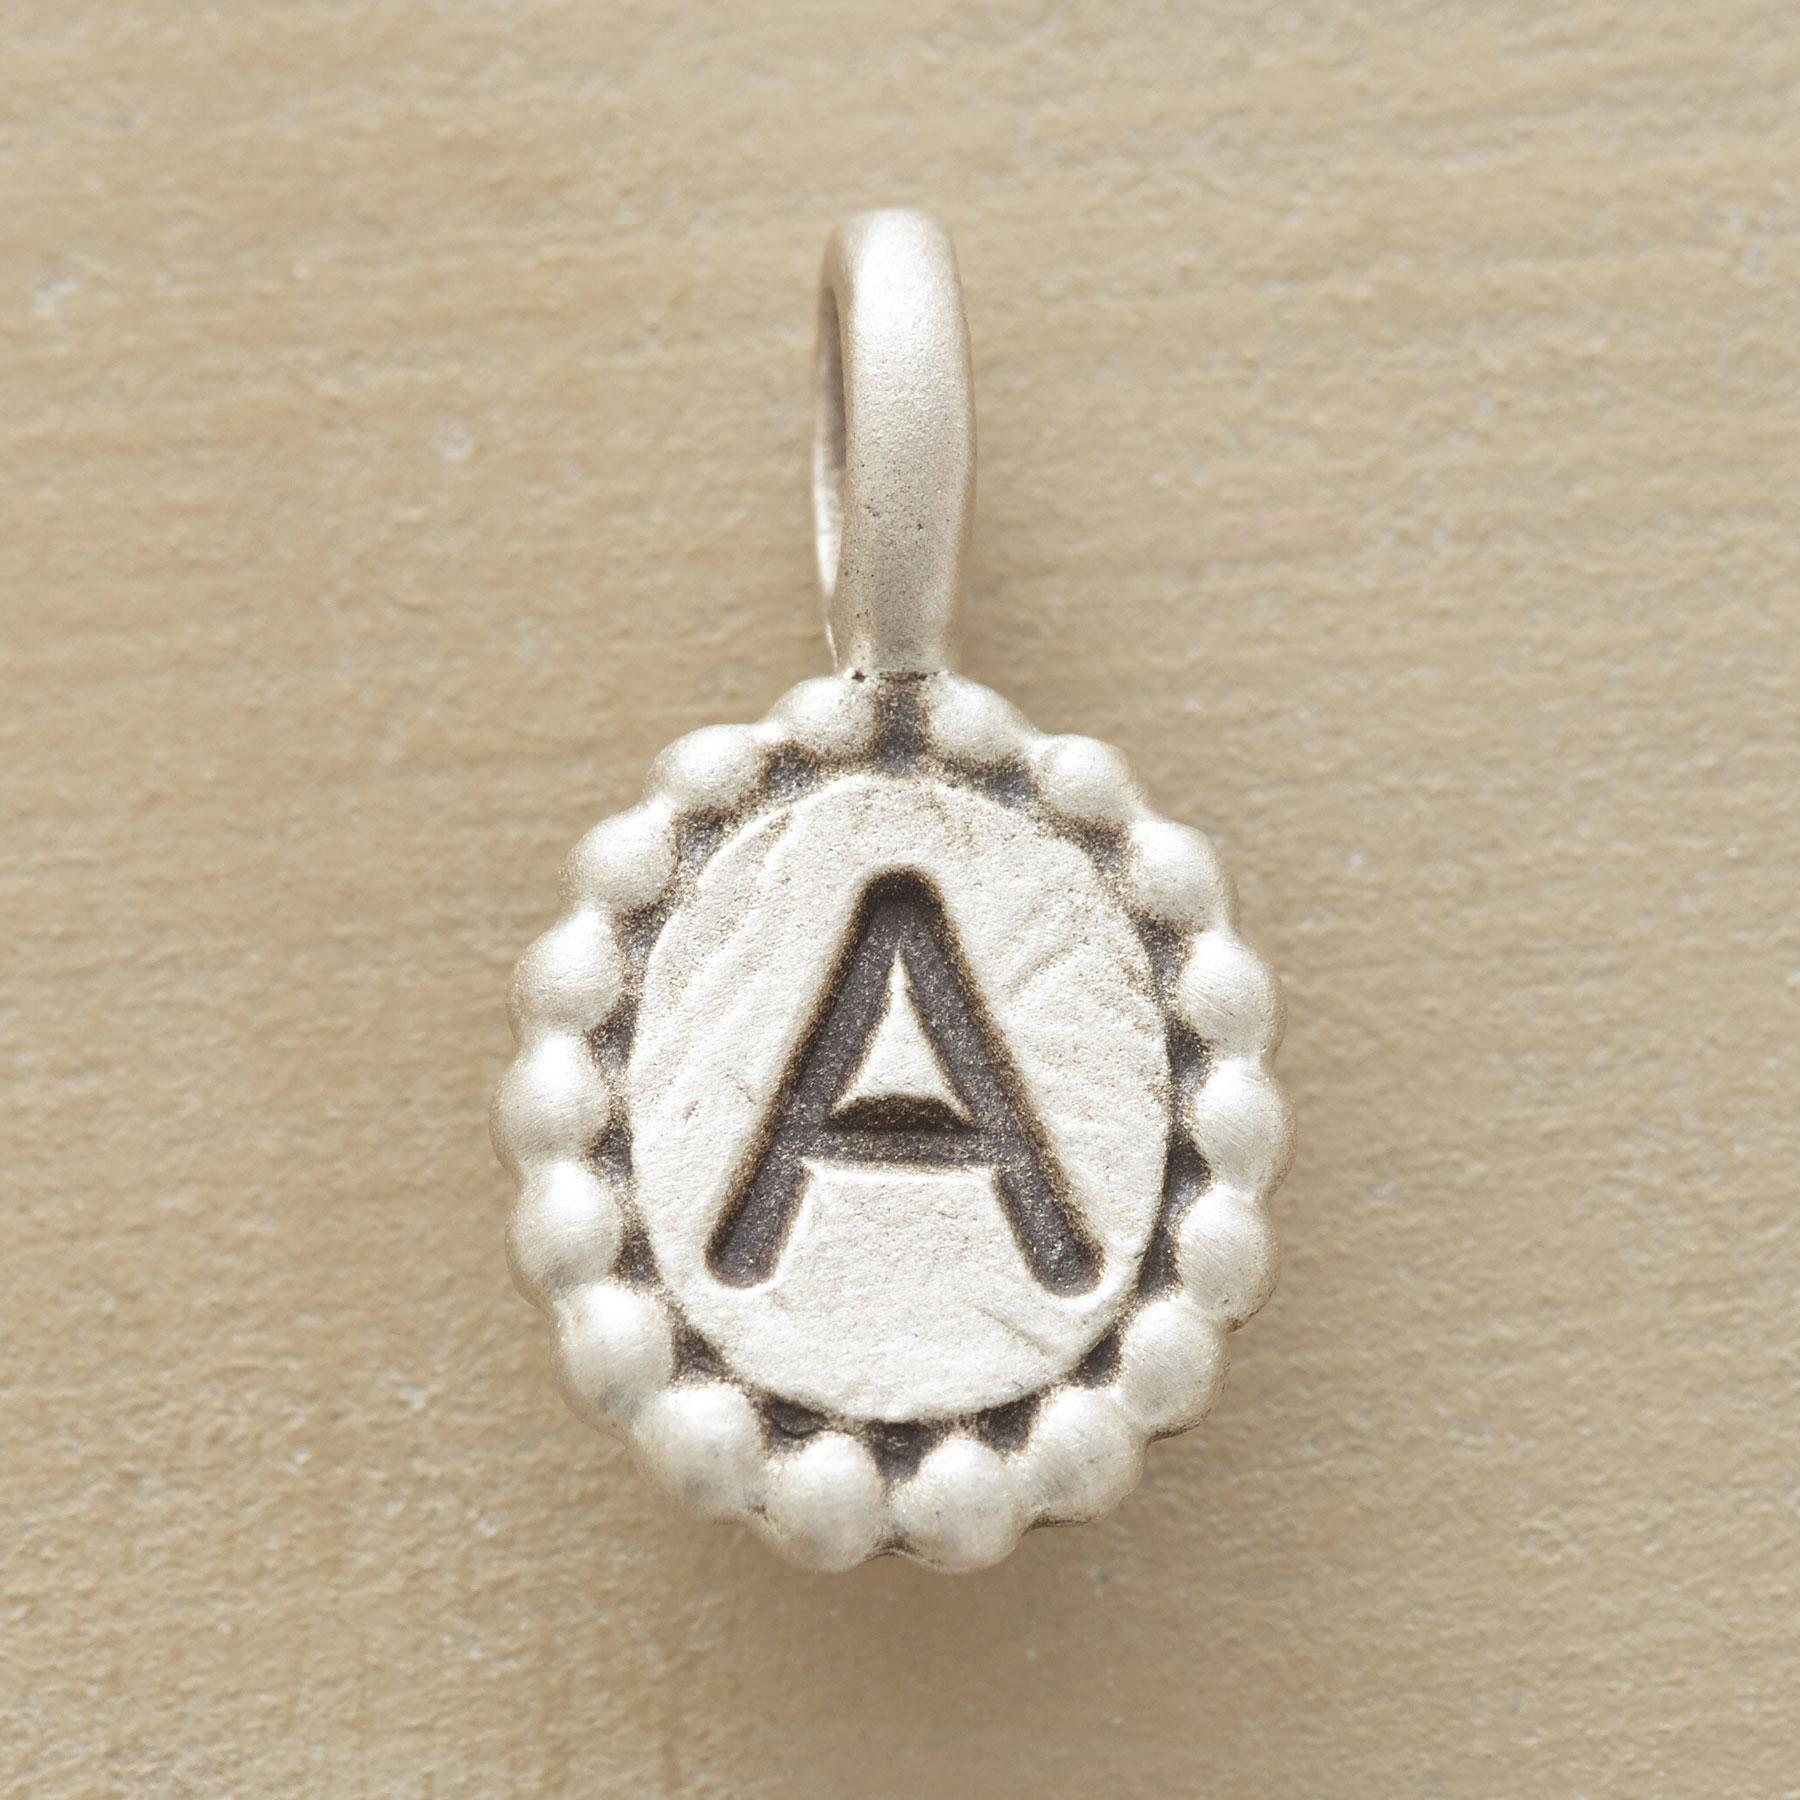 SILVER INITIAL CHARMS: View 1